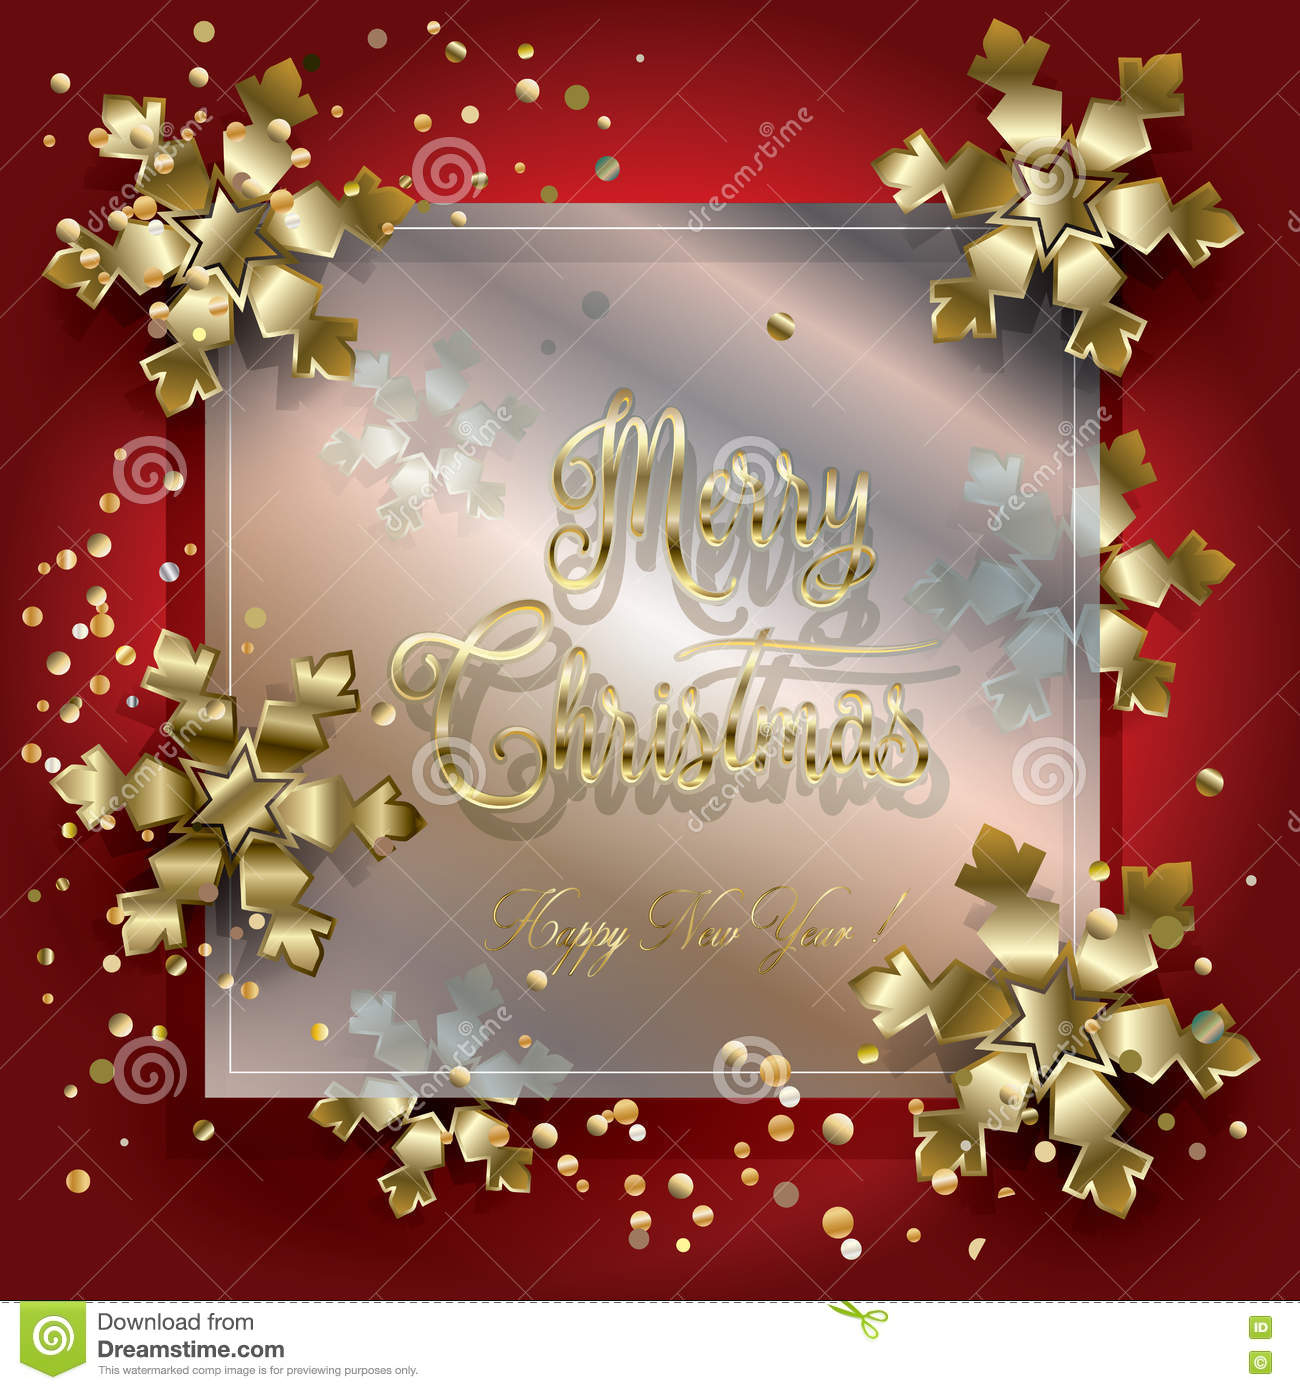 Christmas Card 2019 Gold Luxury Frame Stock Vector - Illustration of ...